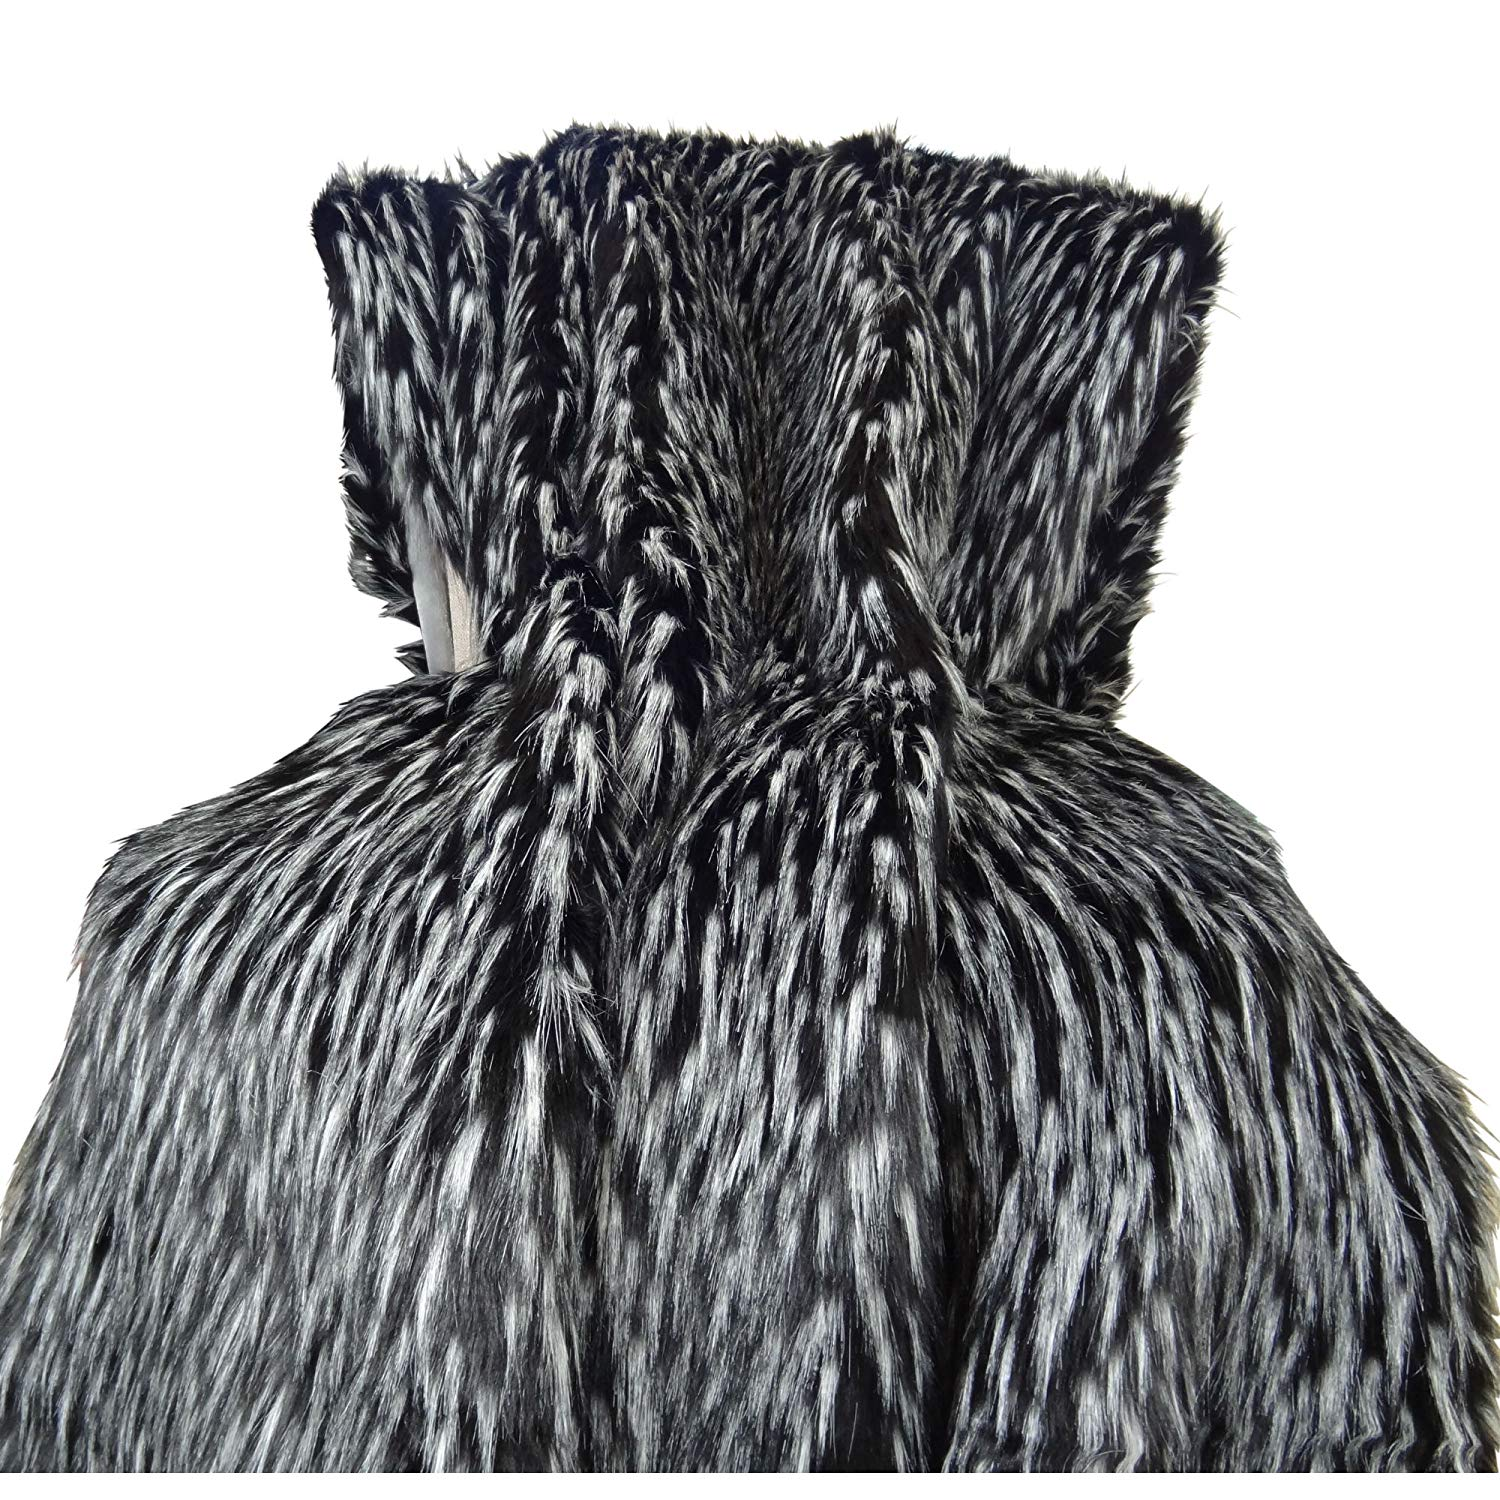 Thomas Collection Black White Fur Throw Blanket & Bedspread - Wolf Faux Fur - Black White Luxury Faux Fur - Throw Blanket - Luxury Plush Faux Fur, Handmade in USA, 16417